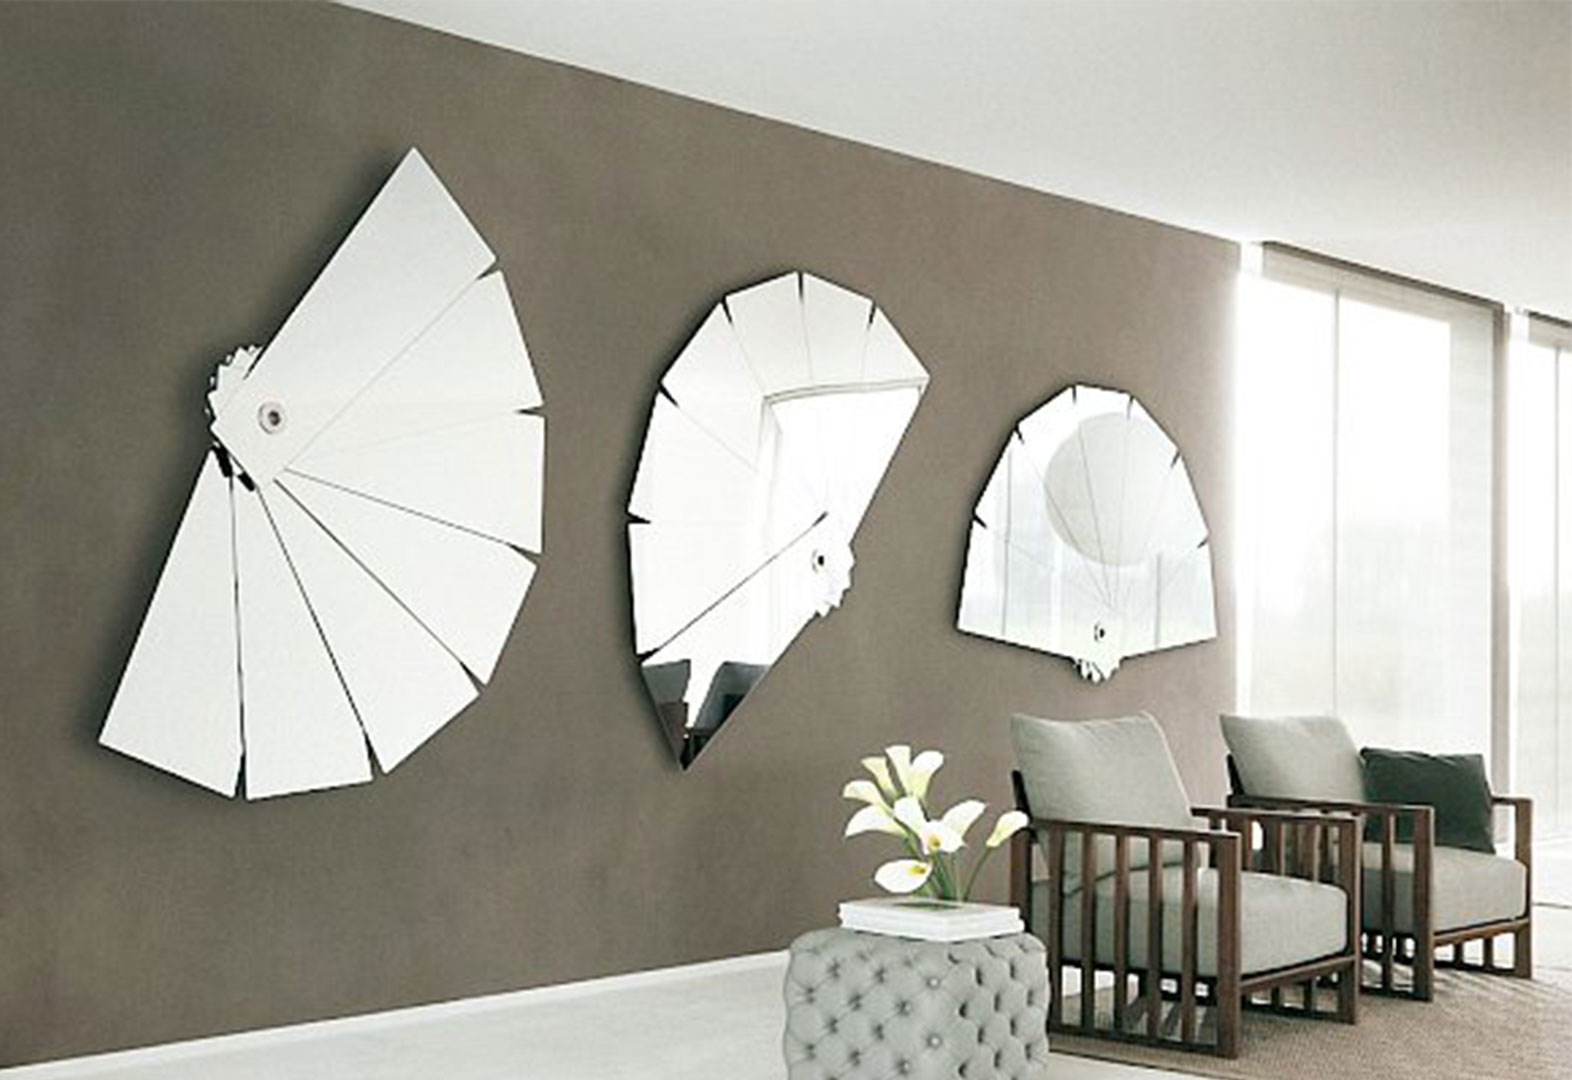 Creative Interior Home Decor Mirrors (View 3 of 10)